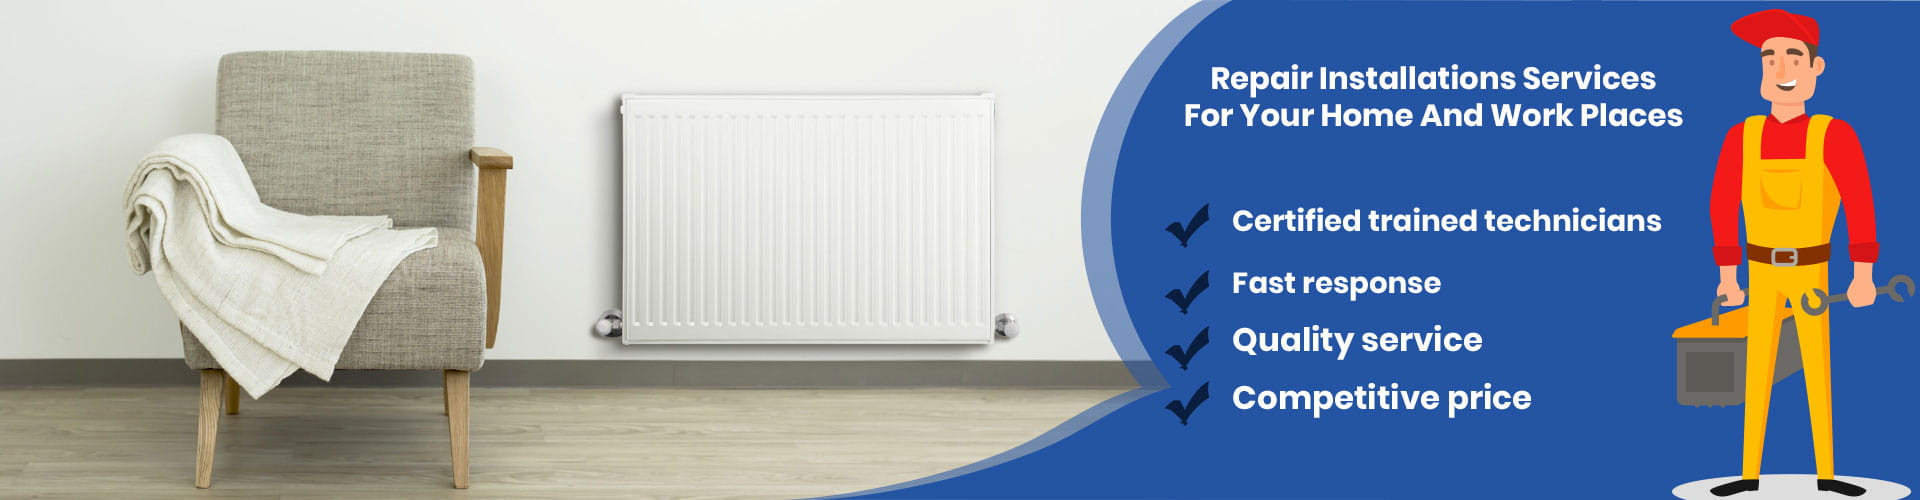 Heating Systems Servicing Repairs Installations Melbourne